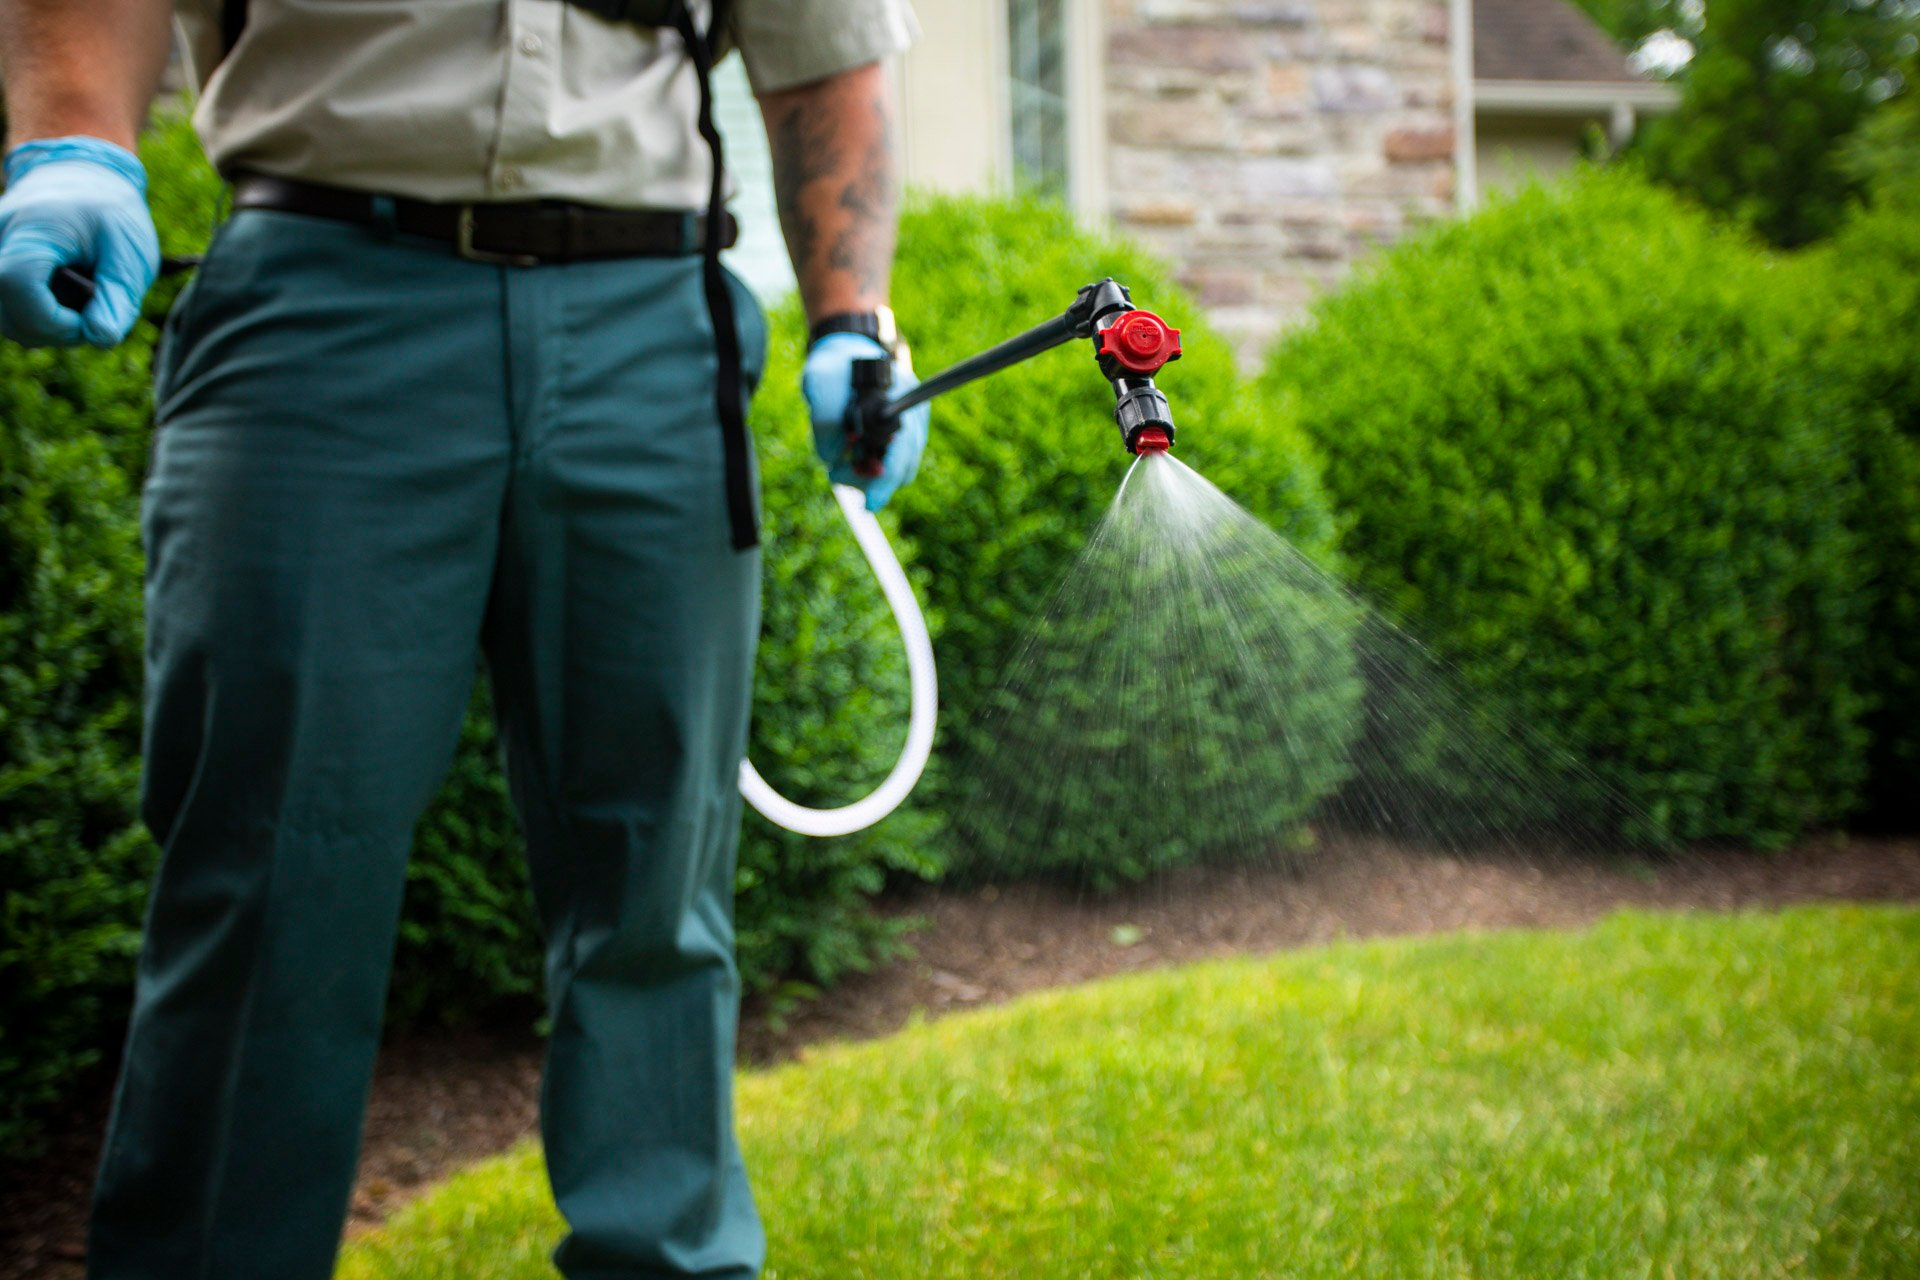 When is Too Late for Crabgrass Preventer? Tips for Killing Crabgrass in Allentown, Bethlehem, or Easton, PA